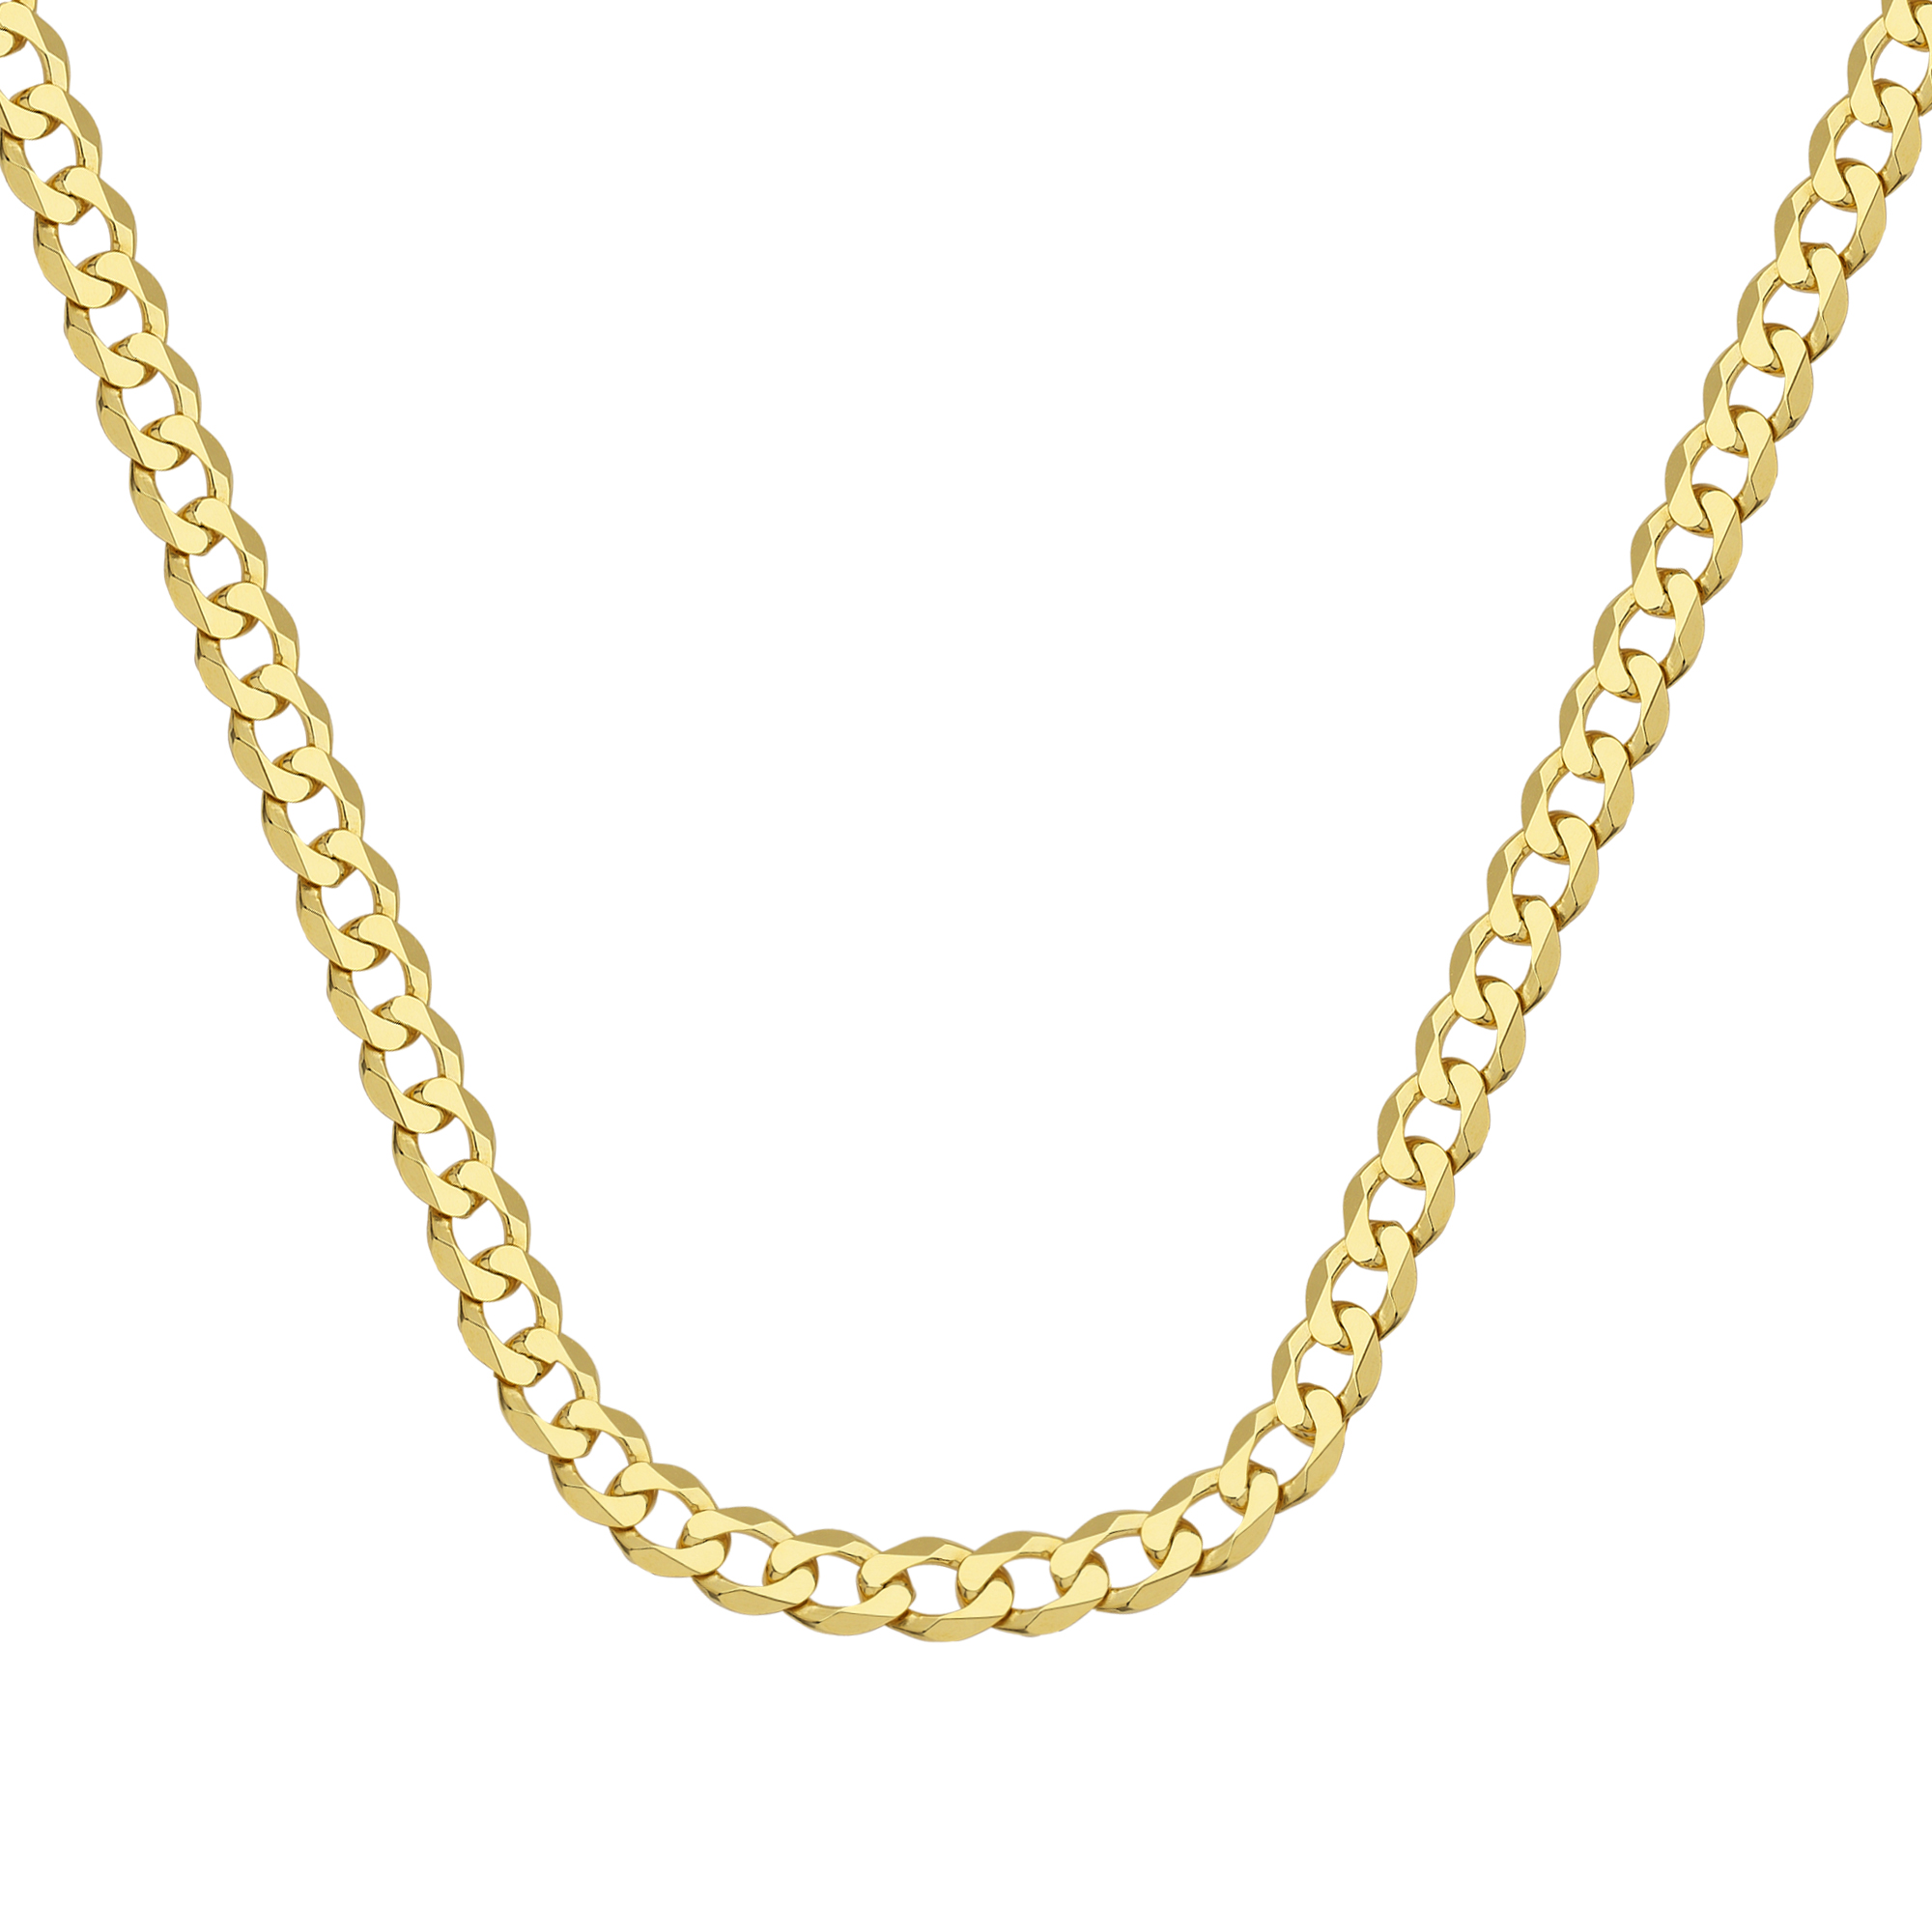 Curb Chain , 14Kt Gold  Curb Chain With Lobster Lock / 20